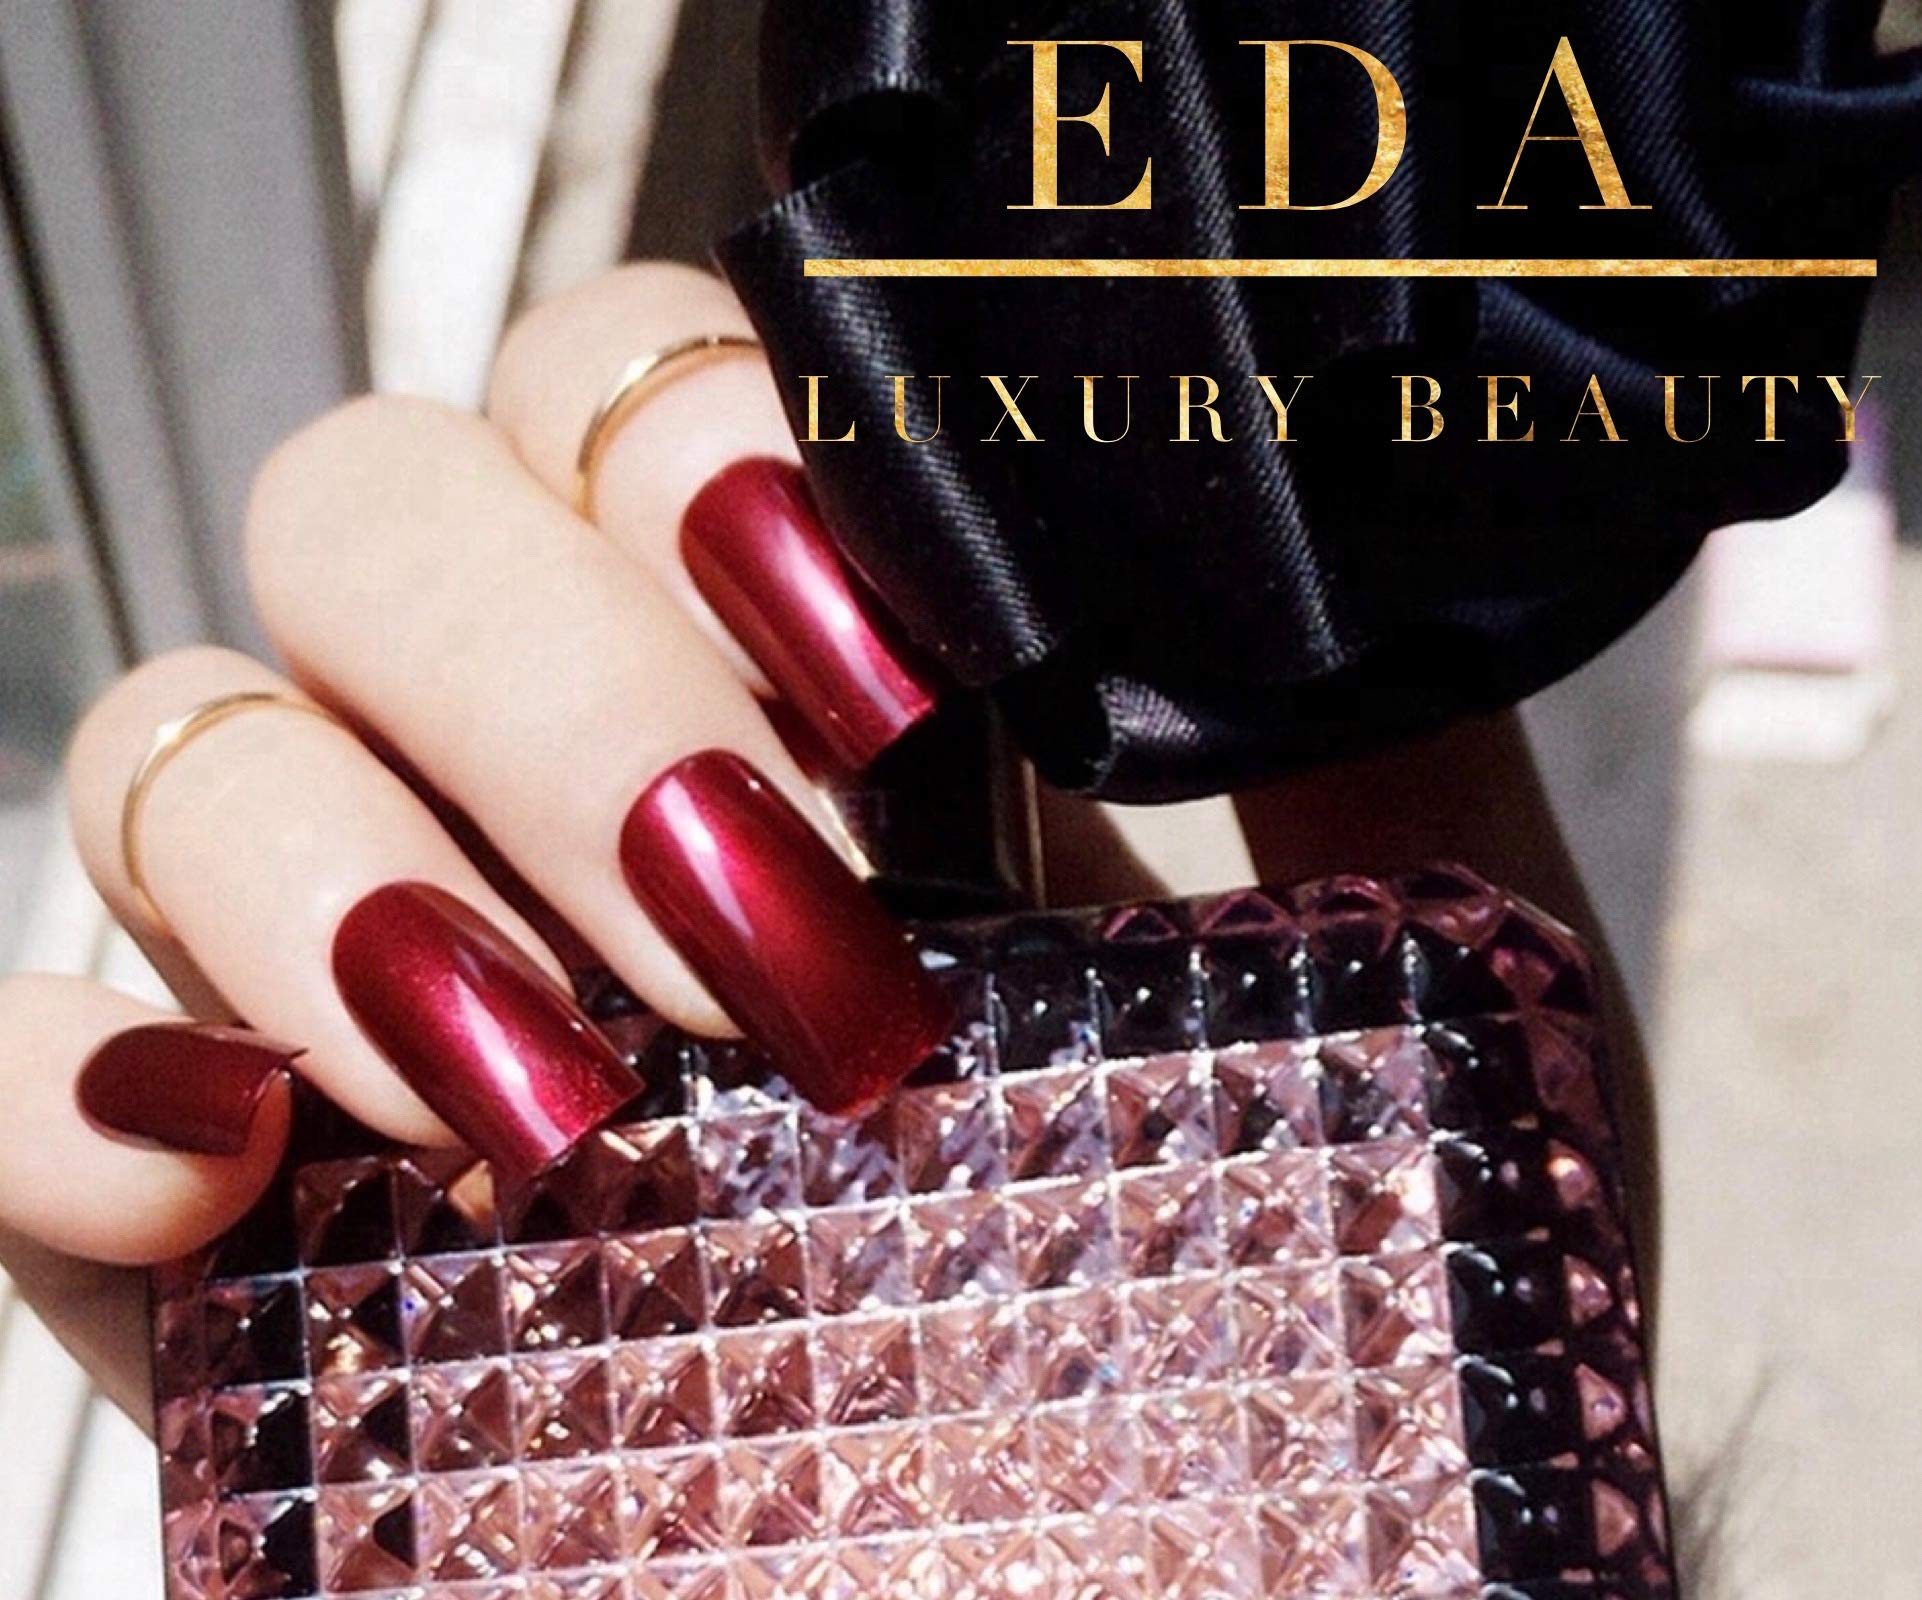 EDA Luxury Beauty Dark Red Burgundy Glamorous Design Gel Glitter Full Cover Press On Artificial Nail Tips Acrylic Perfect False Nails Shiny Shimmer Extra Long Square Super Gorgeous Fashion Fake Nails by EDA LUXURY BEAUTY